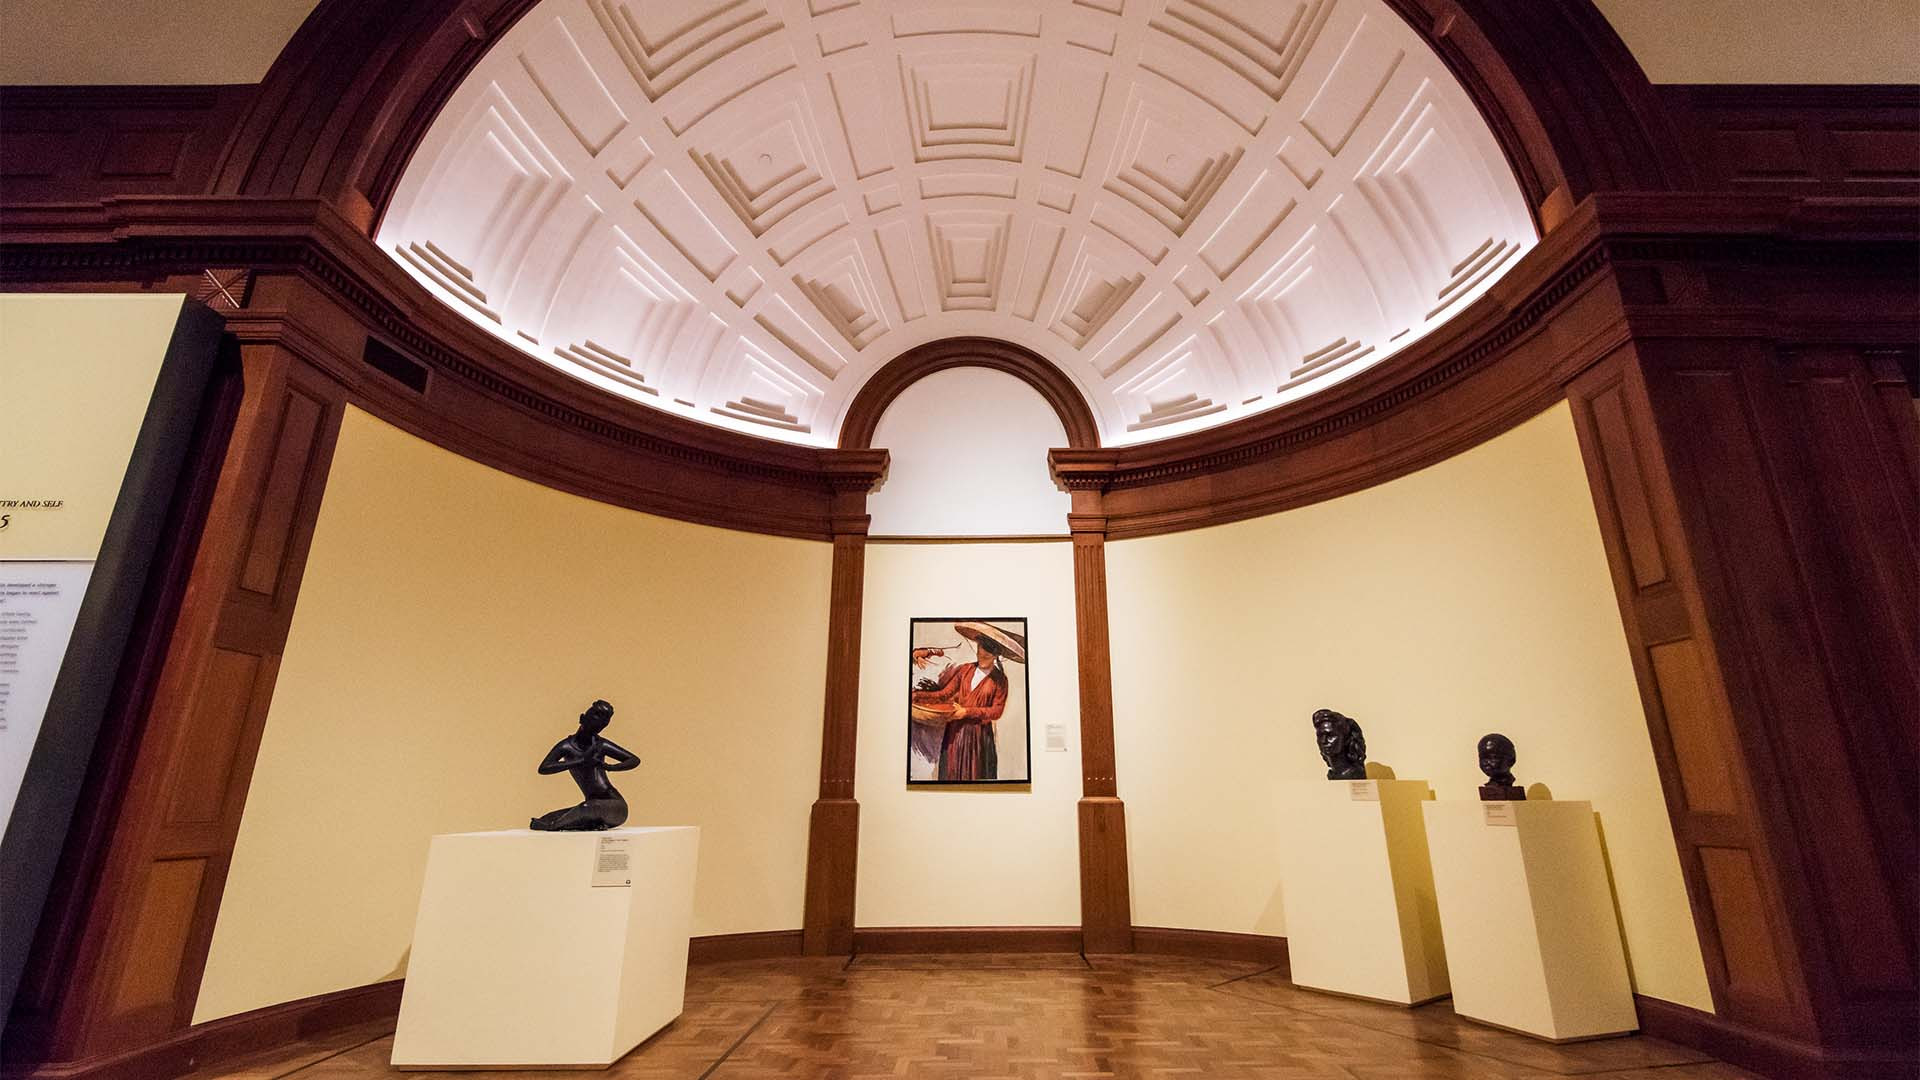 Interior of Singapore National Gallery